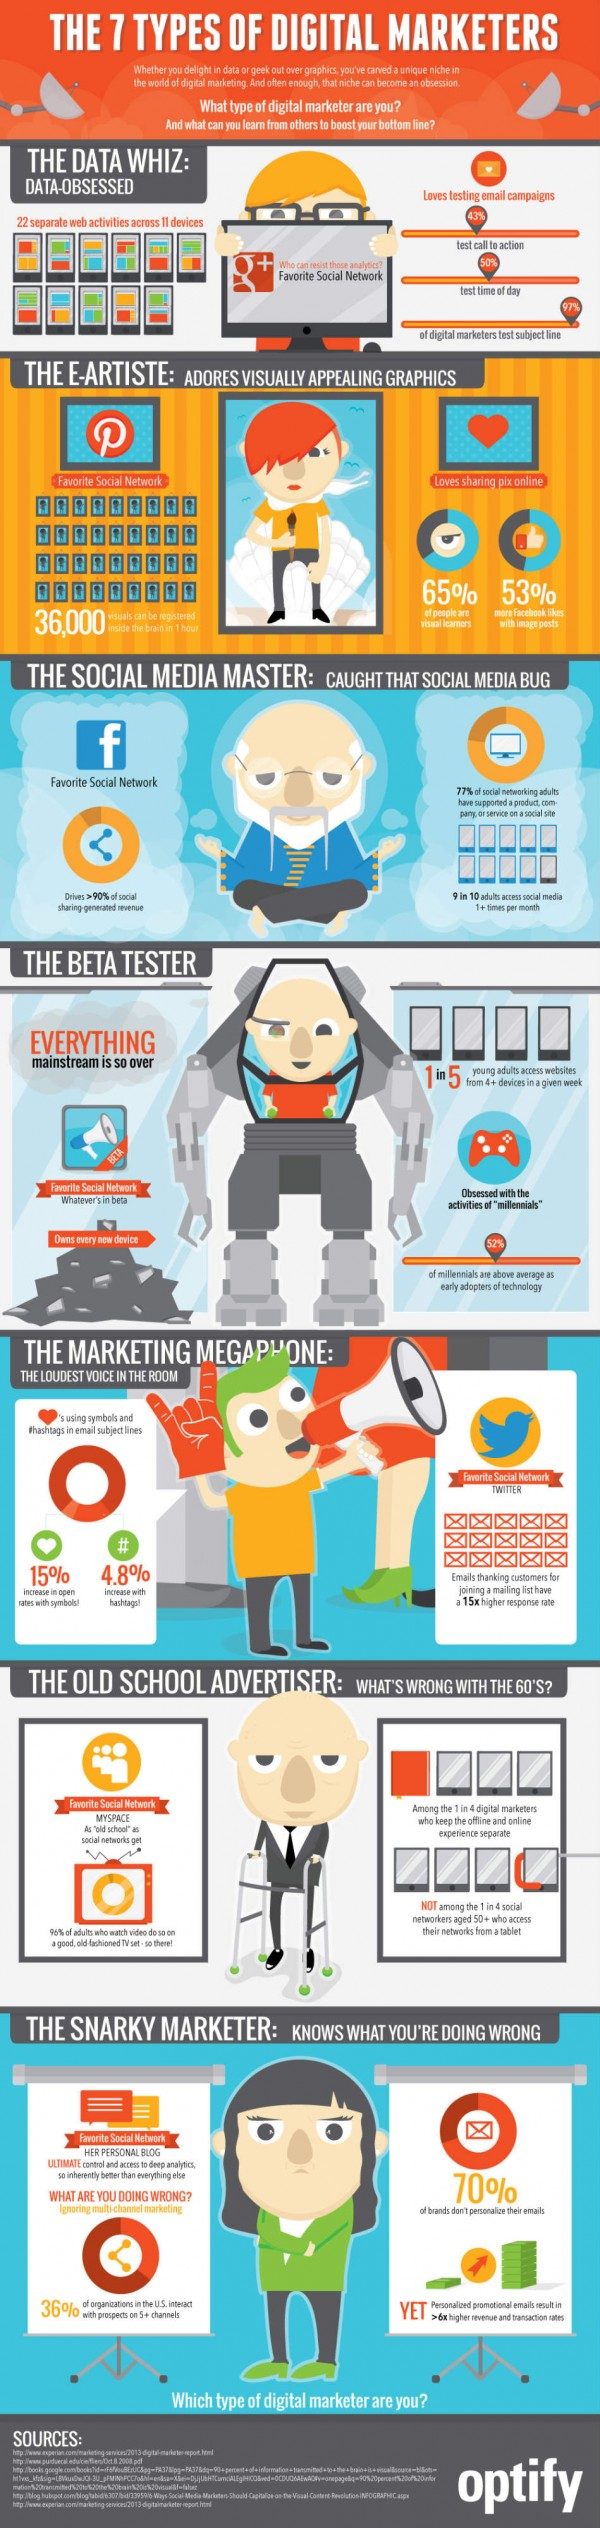 Infographic by Optify - We are Social Media